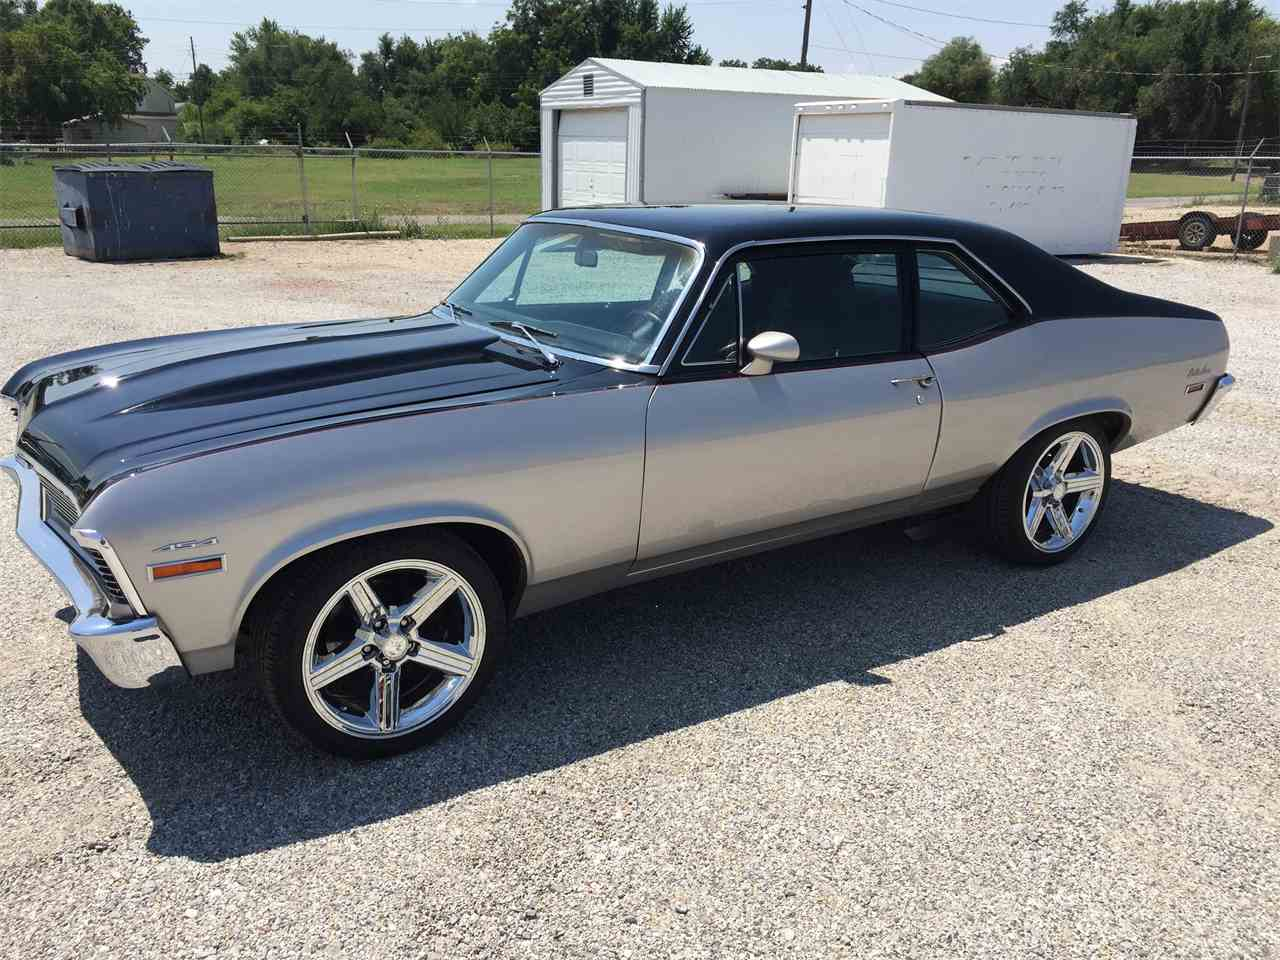 hight resolution of wiring diagram besides 1970 chevelle wiper motor 1970 1970 nova wiring diagram 1966 nova wiring diagram